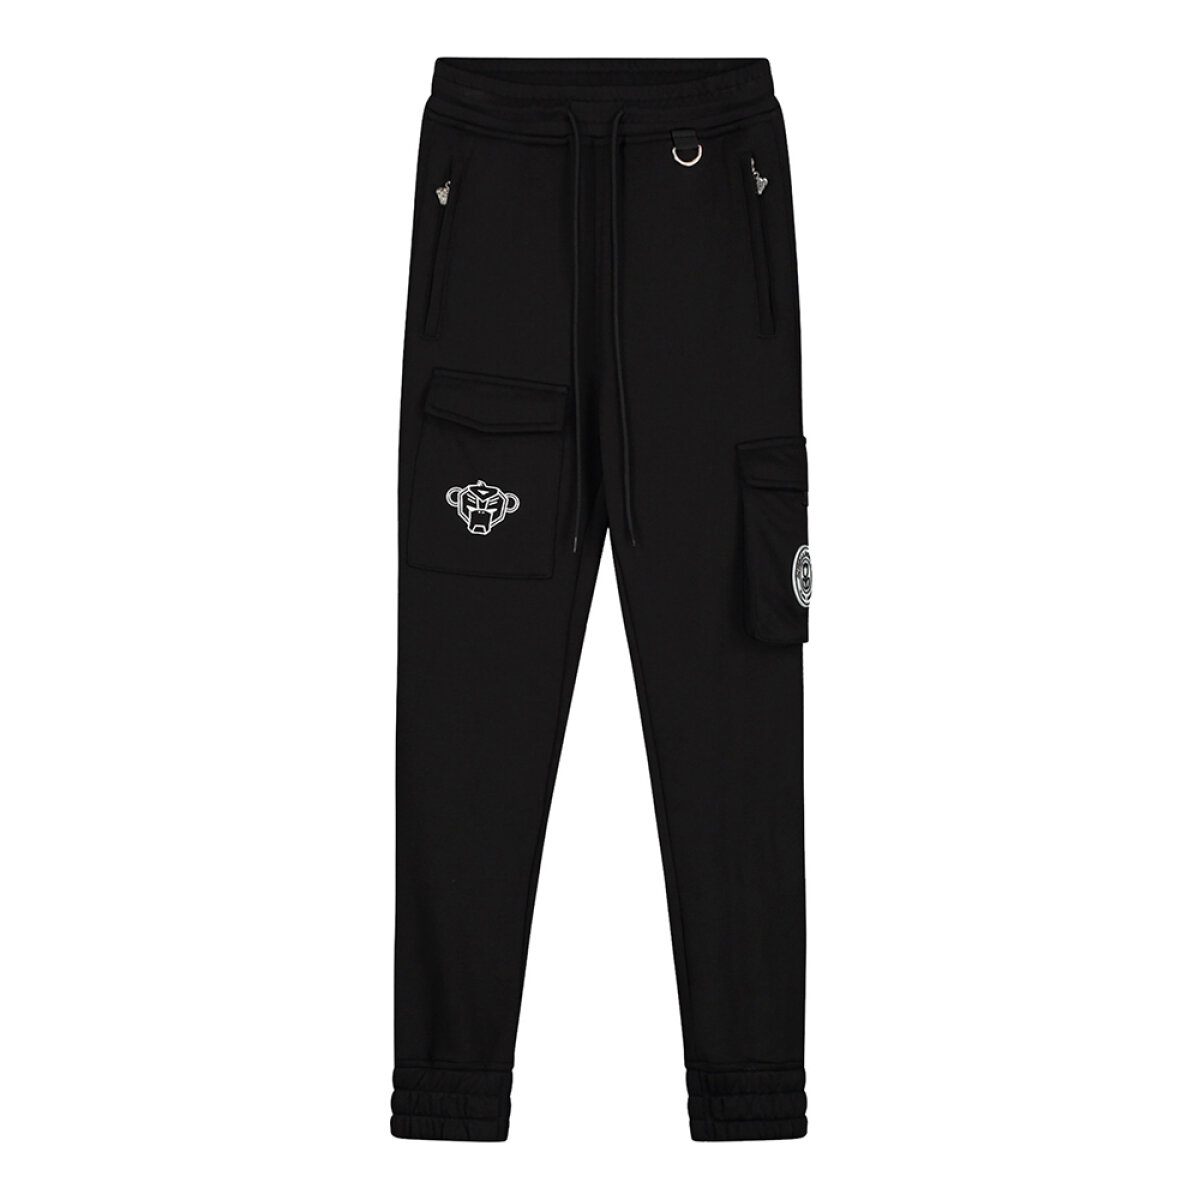 Black Bananas jongens sweatpants JRSS21 zwart